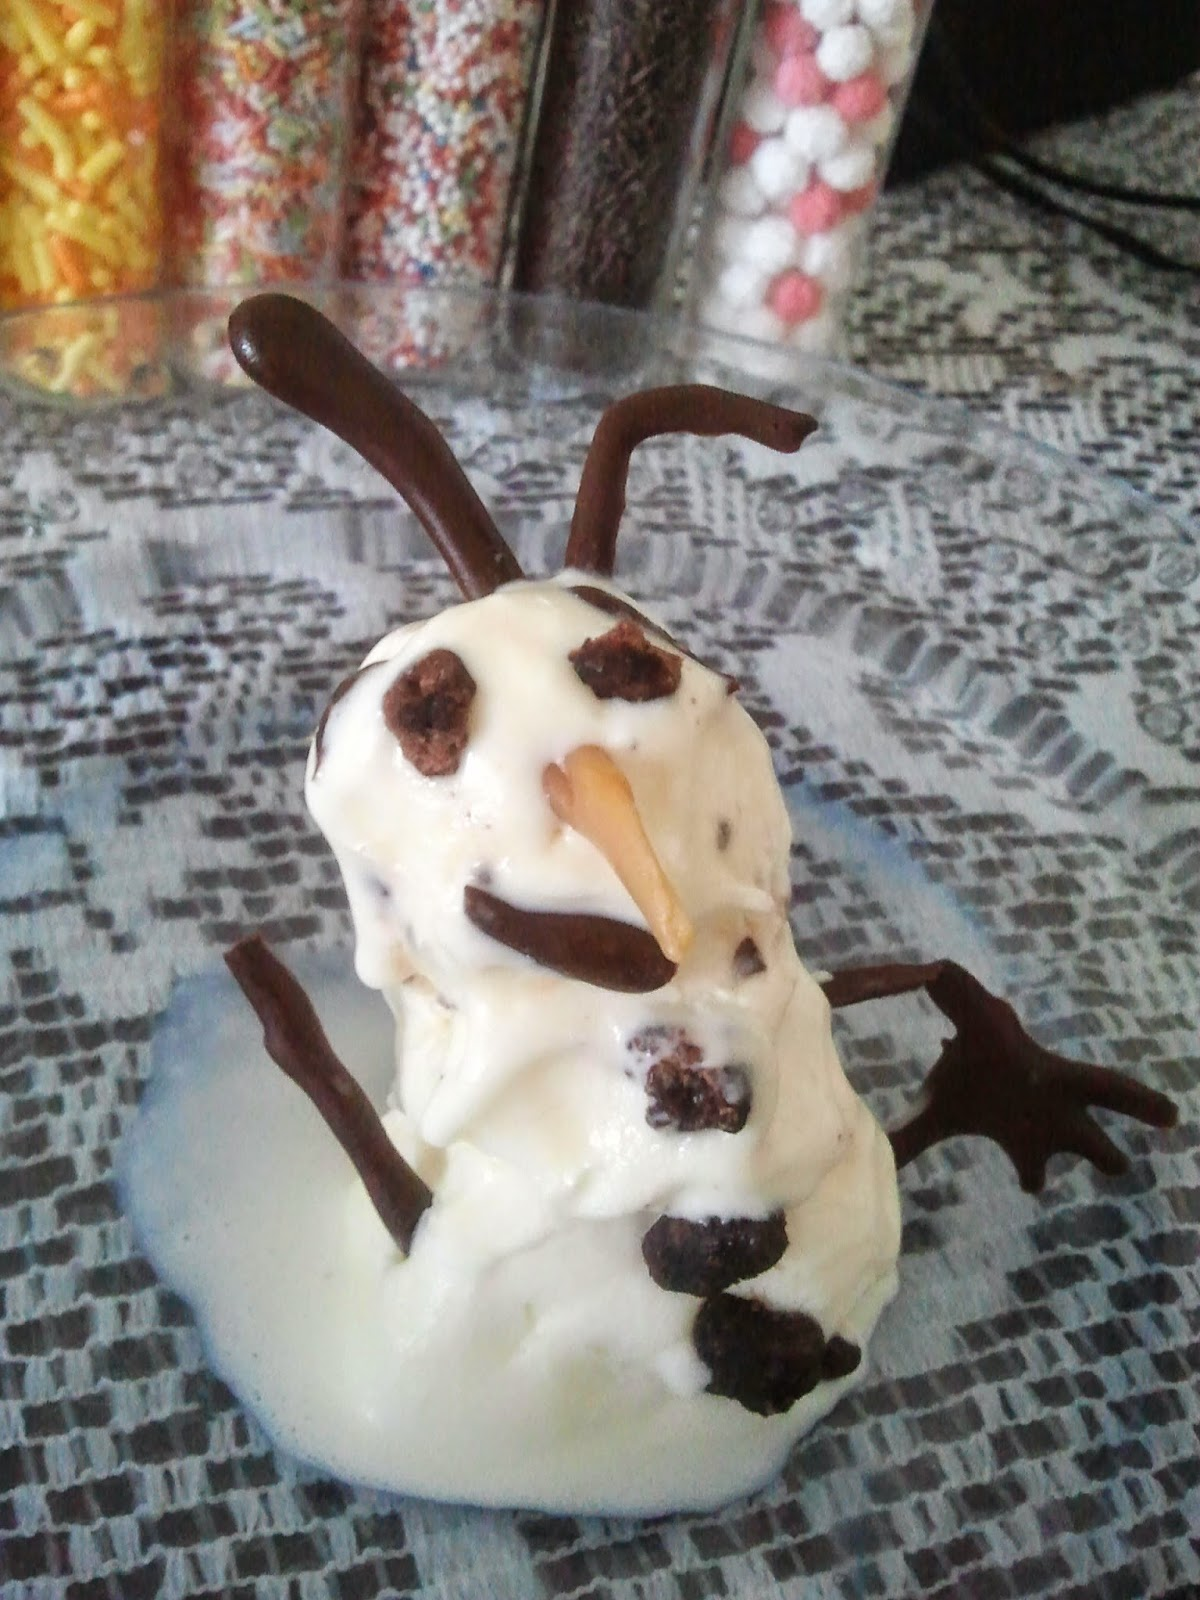 tried making Olaf